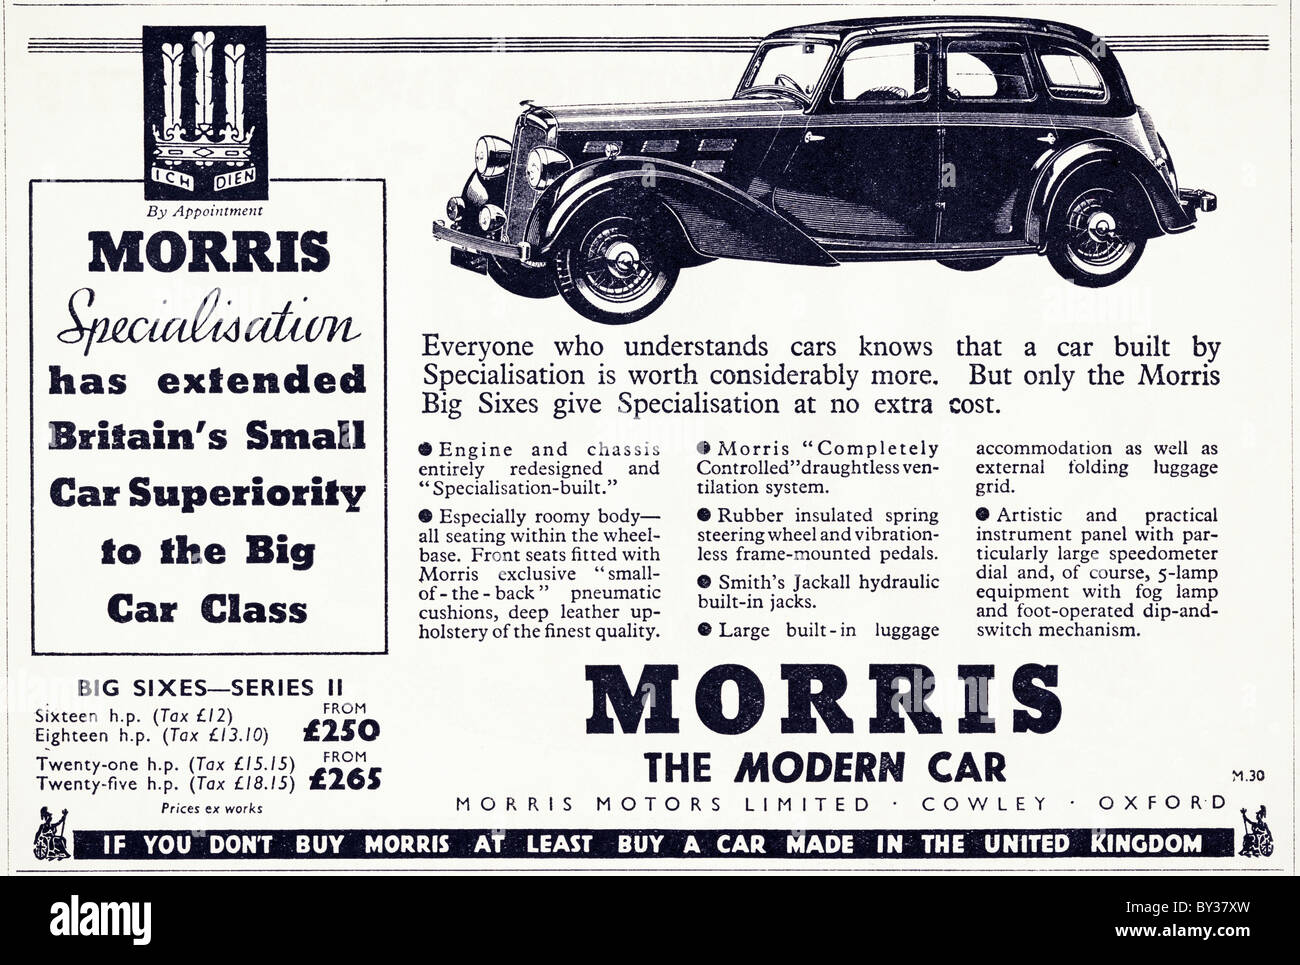 Original Advert For Morris Motors Ltd Morris Big Sixes Series 11 Car